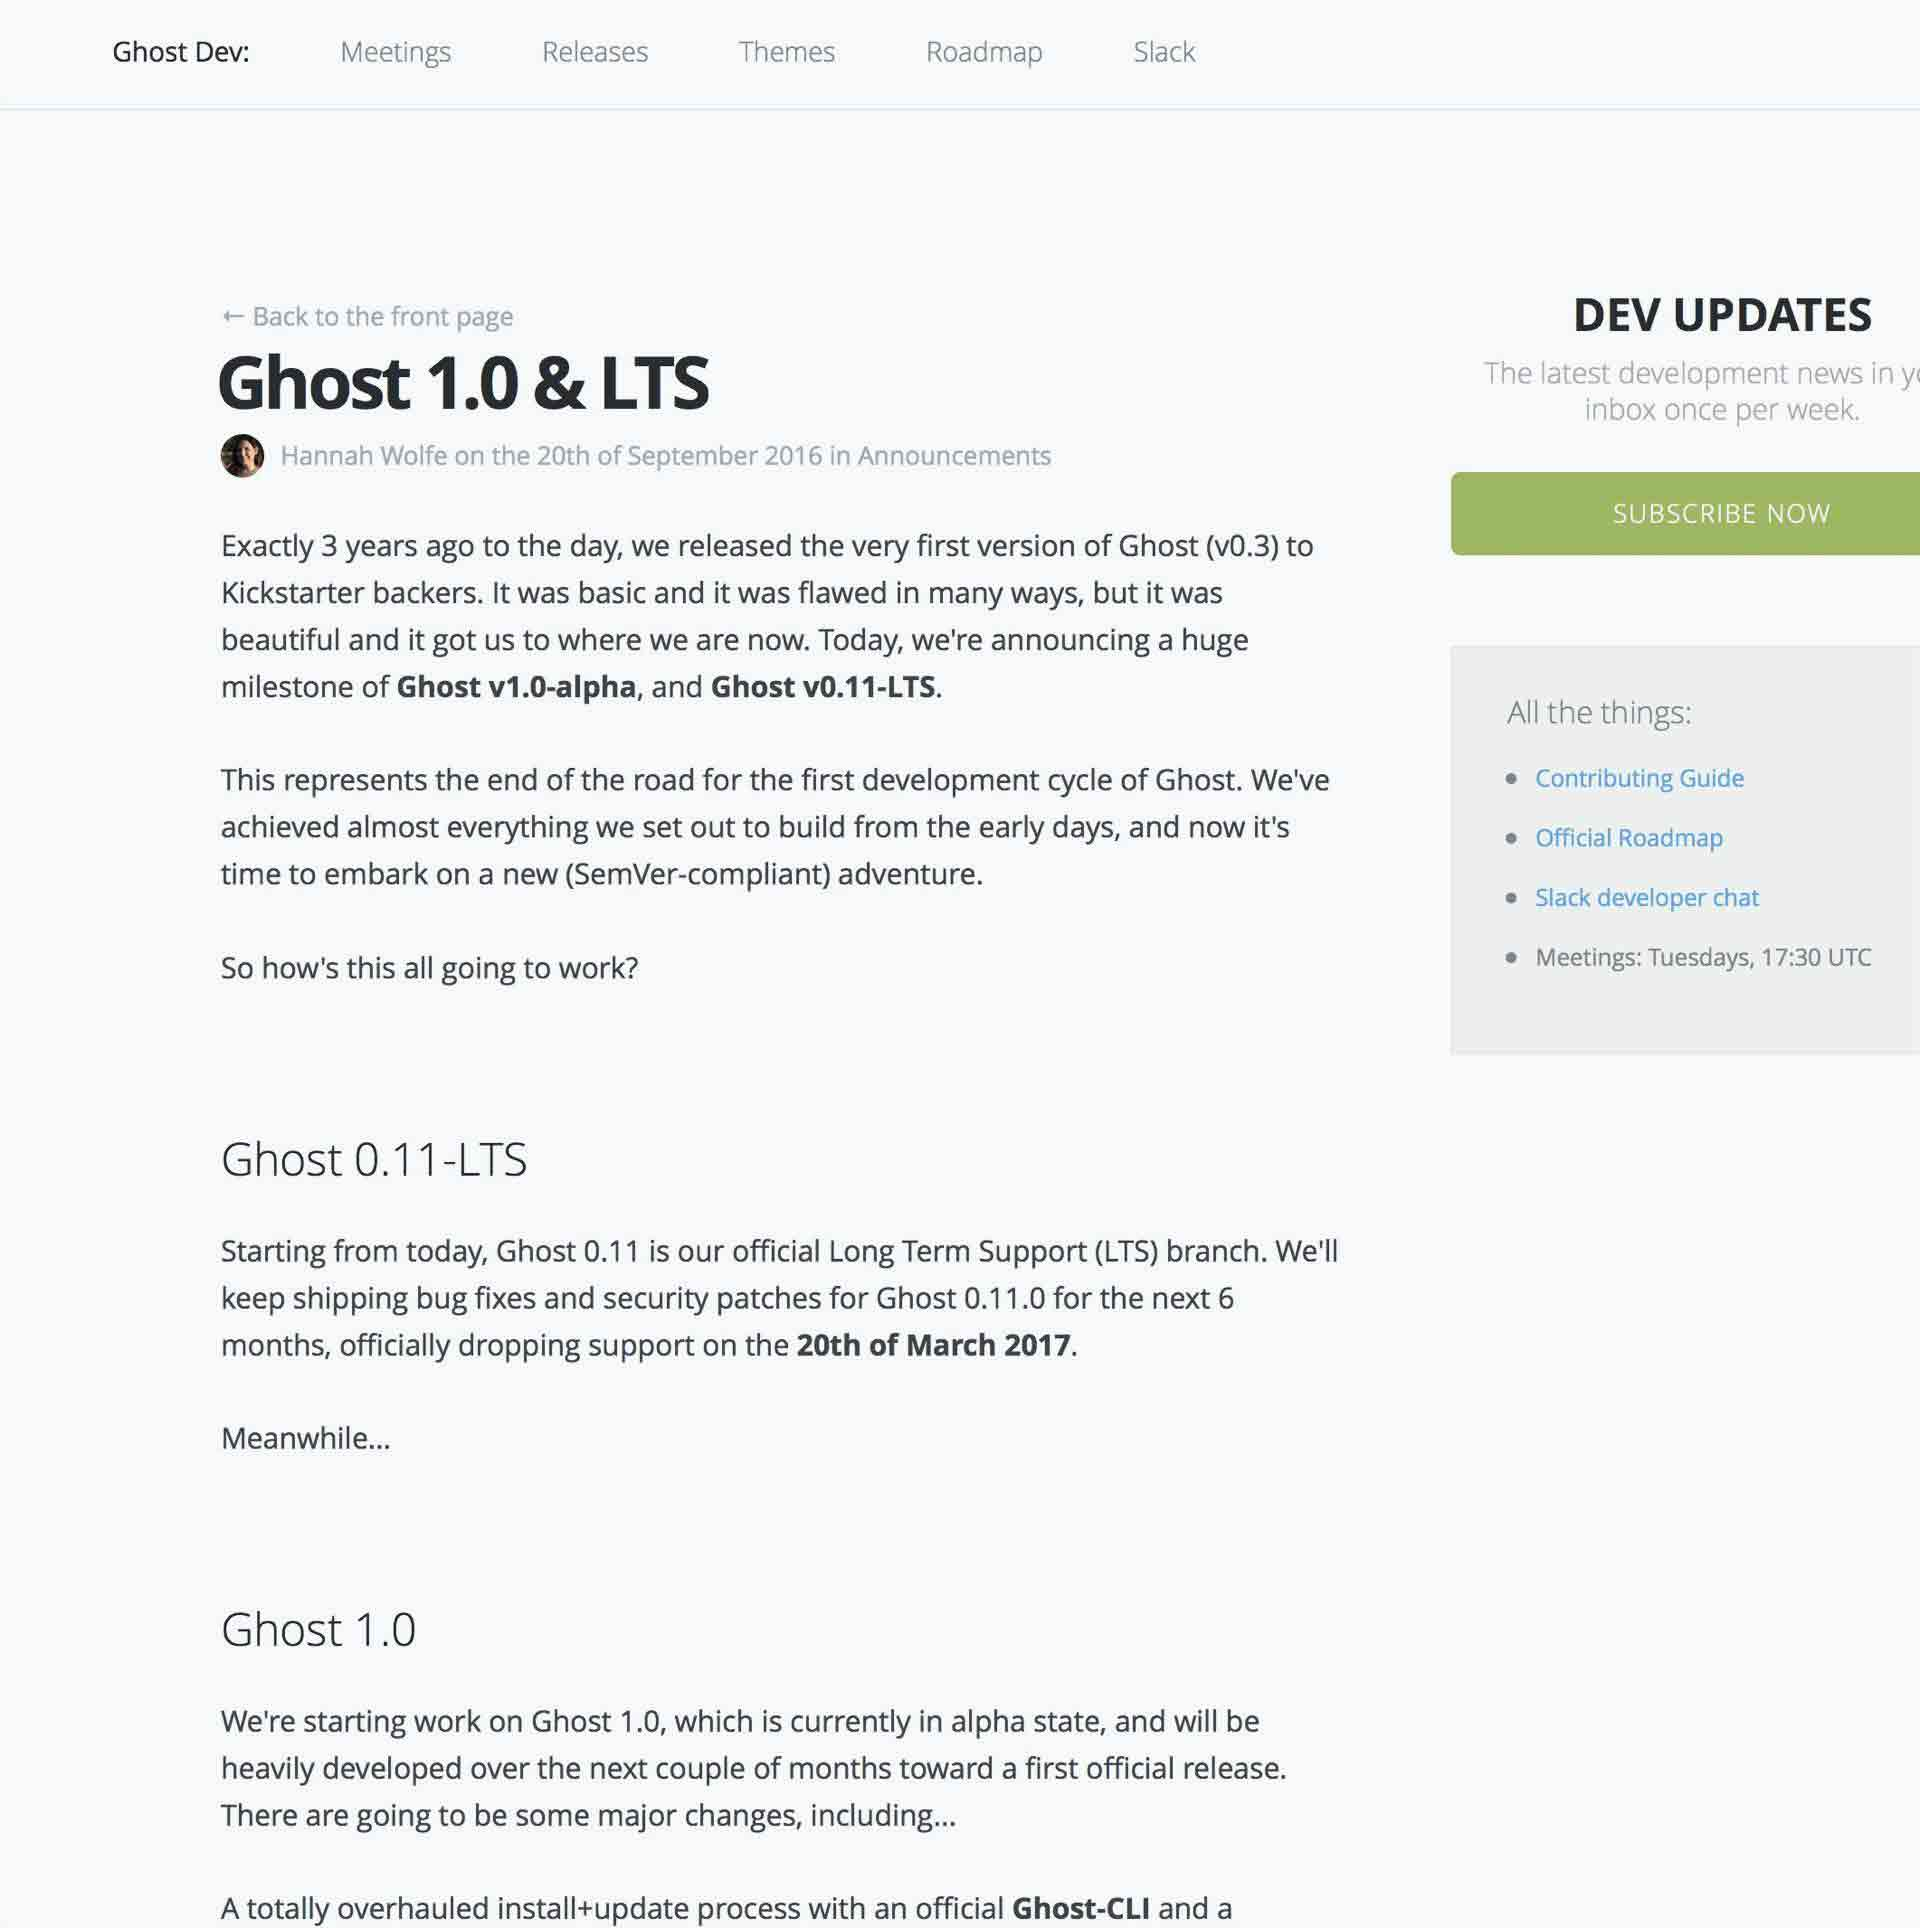 Ghost0.11 LSTそしてGhost1.0へ